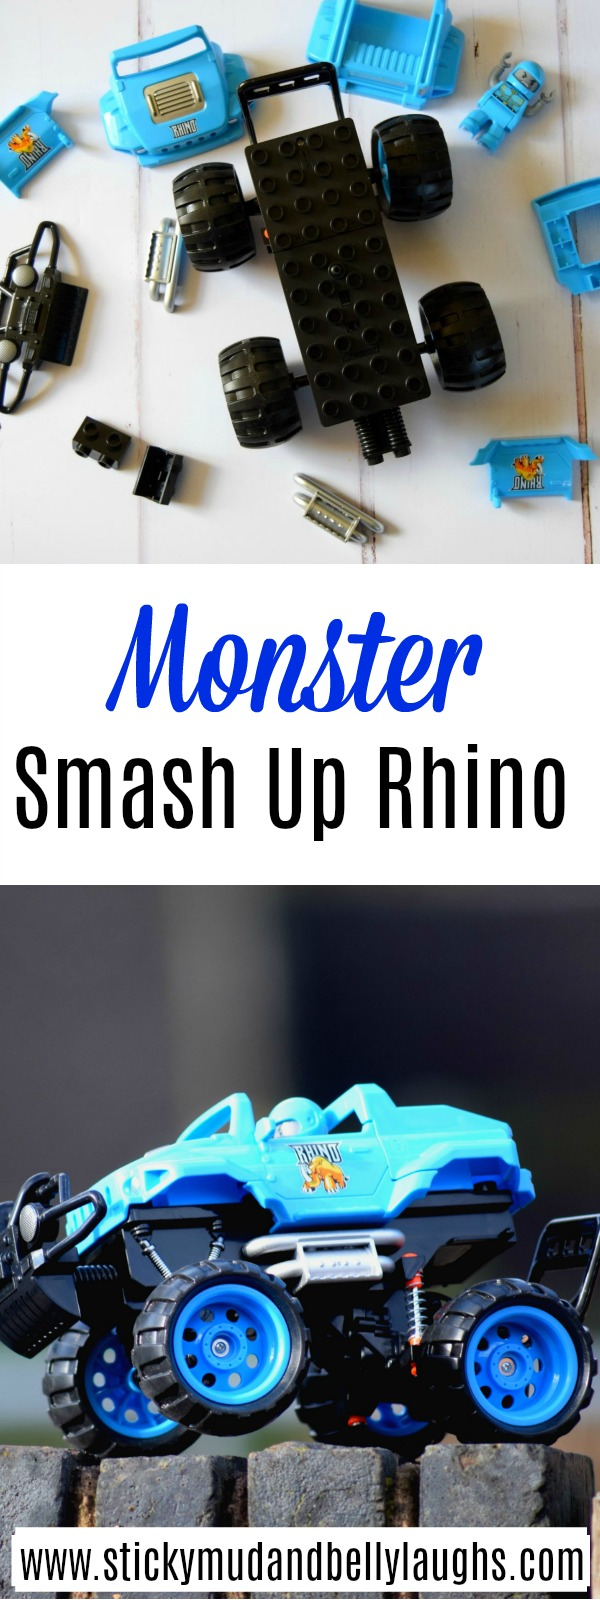 Monster Smash Up's Rhino remote controlled 4x4. #toyreview #toys #remotecontrolled